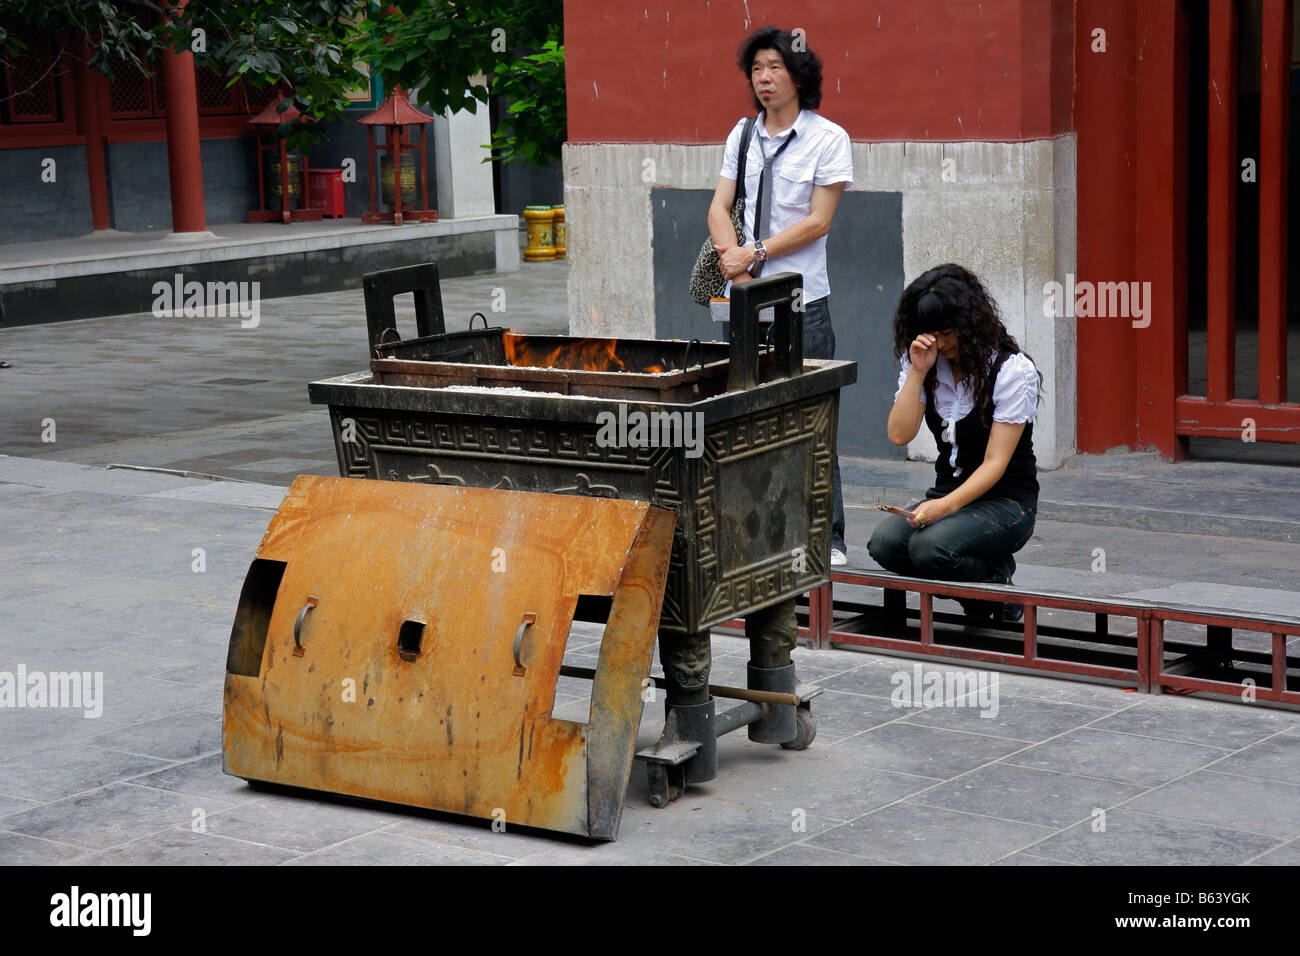 Chinese man and woman in religious offering, burning incense sticks in the YongHeGong lama temple in Beijing, China Stock Photo